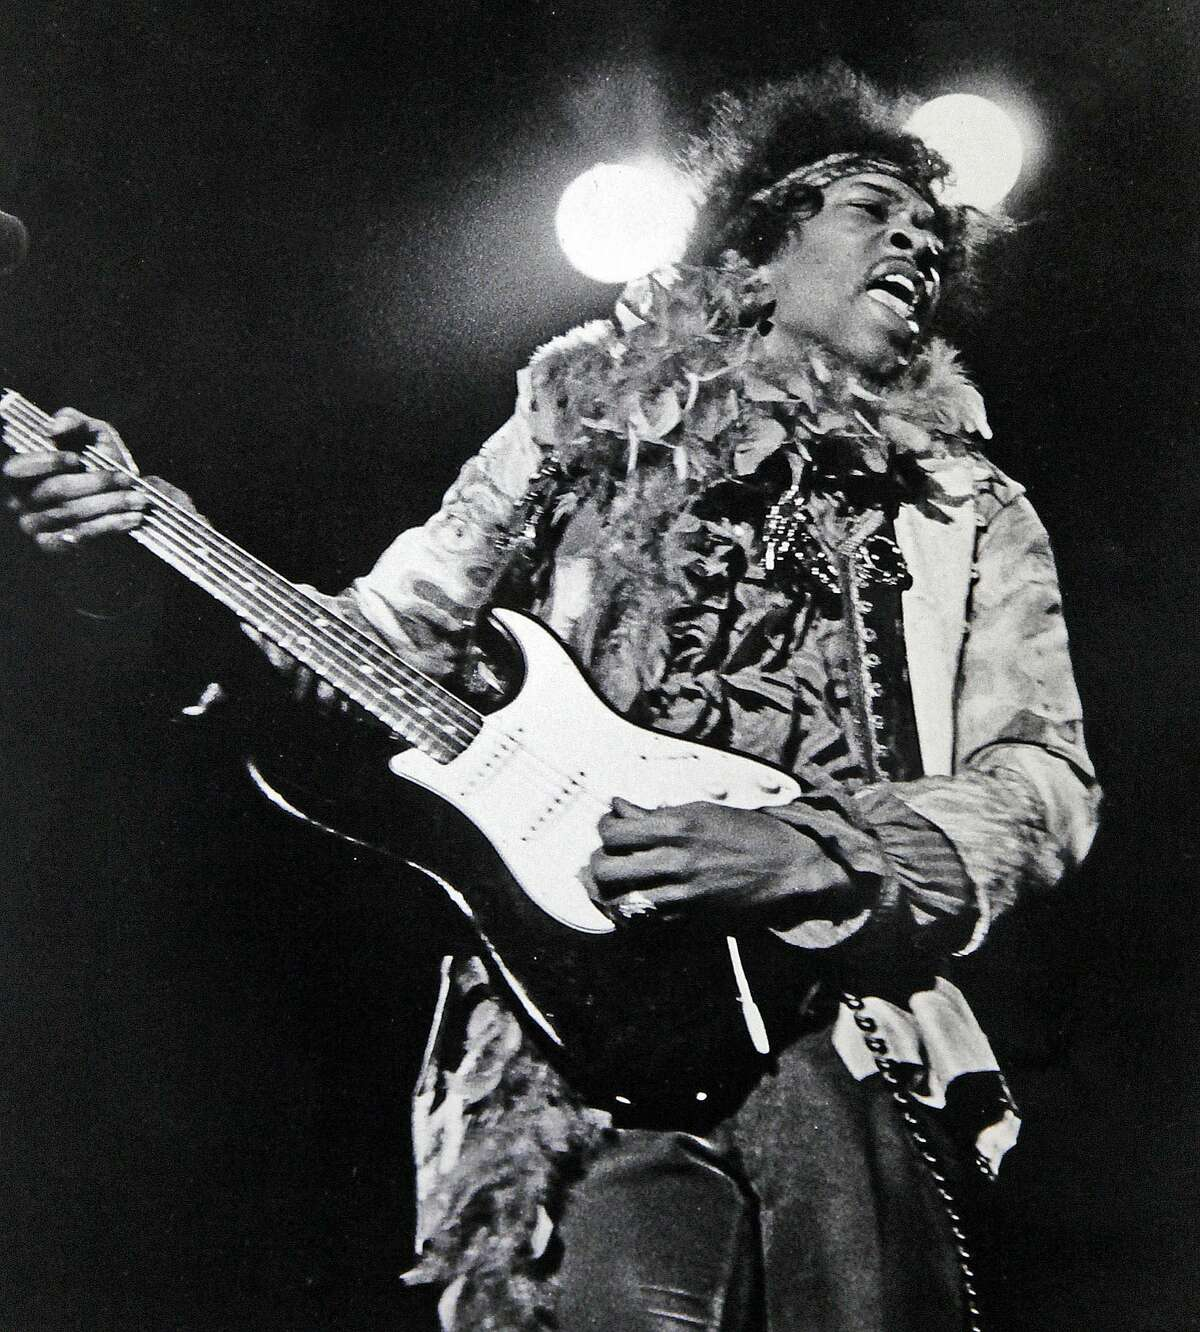 June 18, 1967: Monterey Pop Festival Before Burning Man and Bonnaroo, Coachella and Lollapalooza, Glastonbury and Governors Island, there was the incredible music at Monterey Pop, featuring, among many others, Jimi Hendrix. (Monterey Herald via AP)